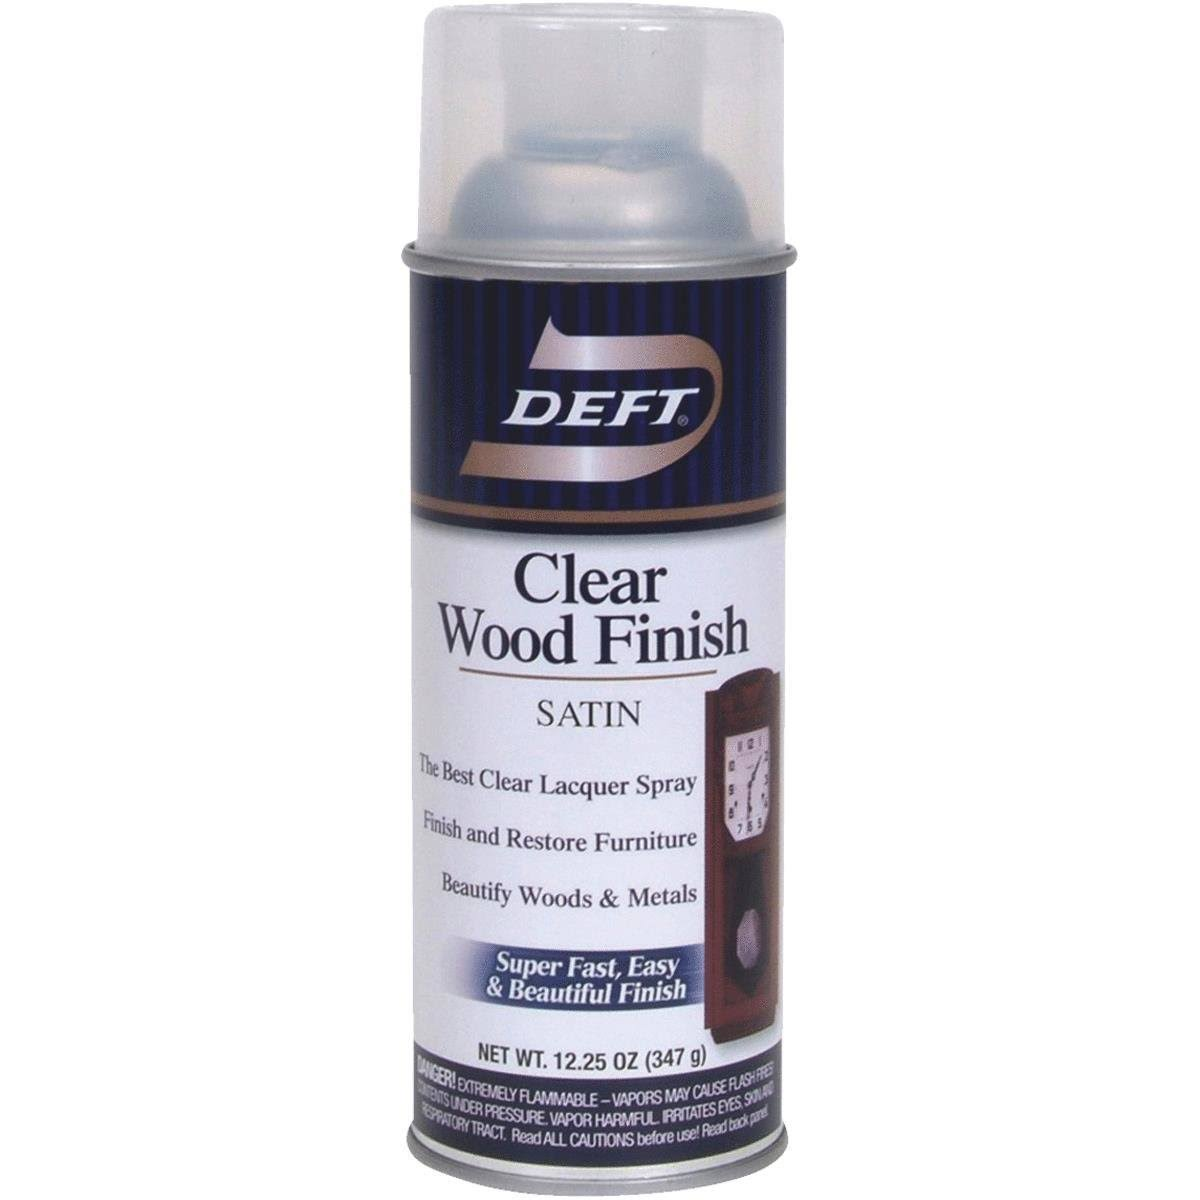 Deft Lacquer Spray - Satin, Clear, Wood Finish